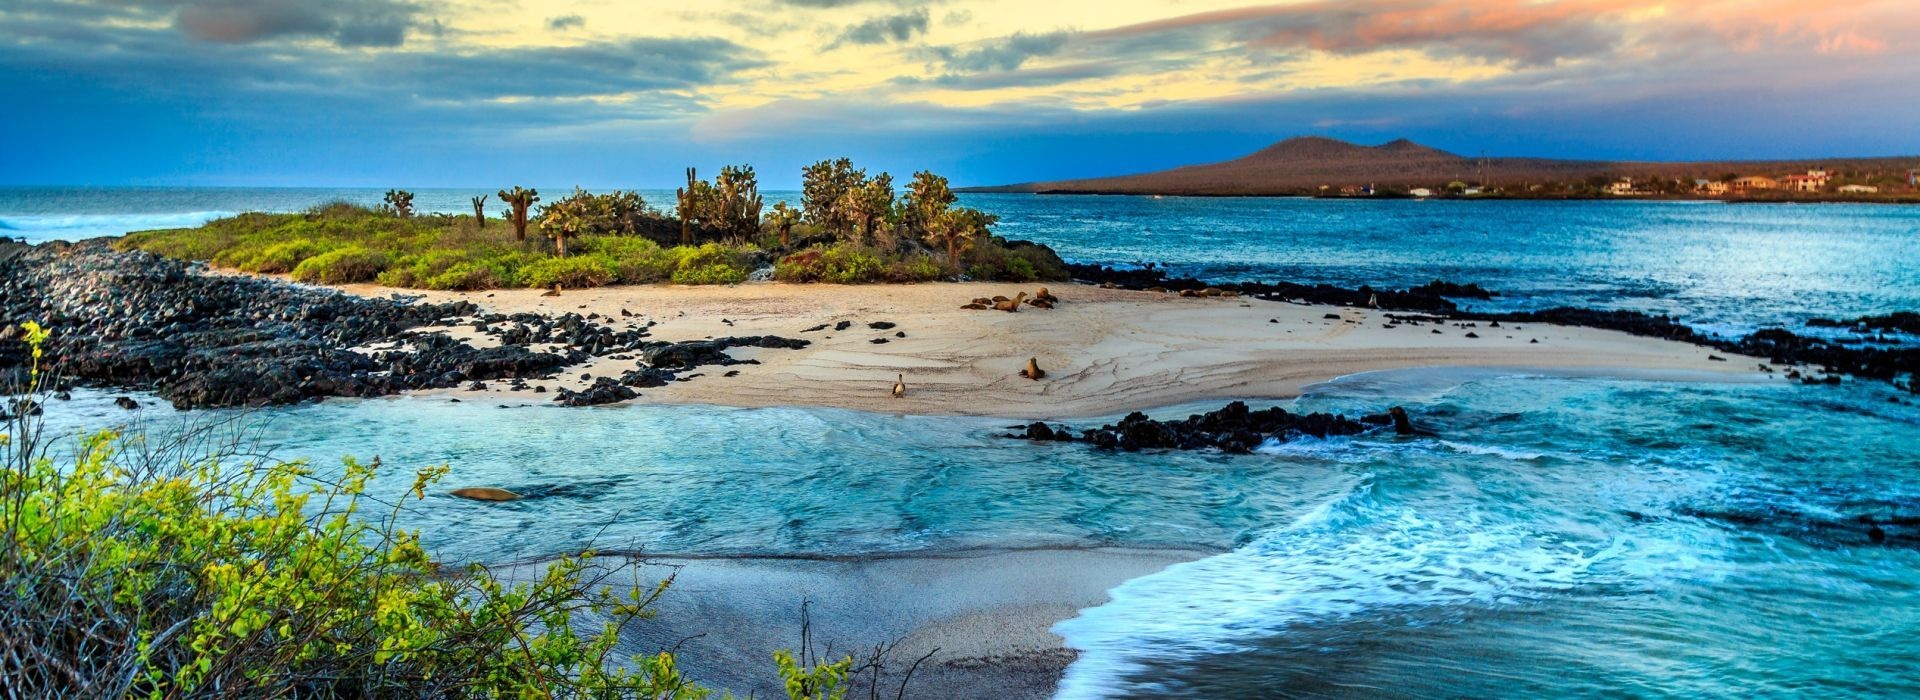 Wildlife, landscapes and nature Tours in Galapagos Islands